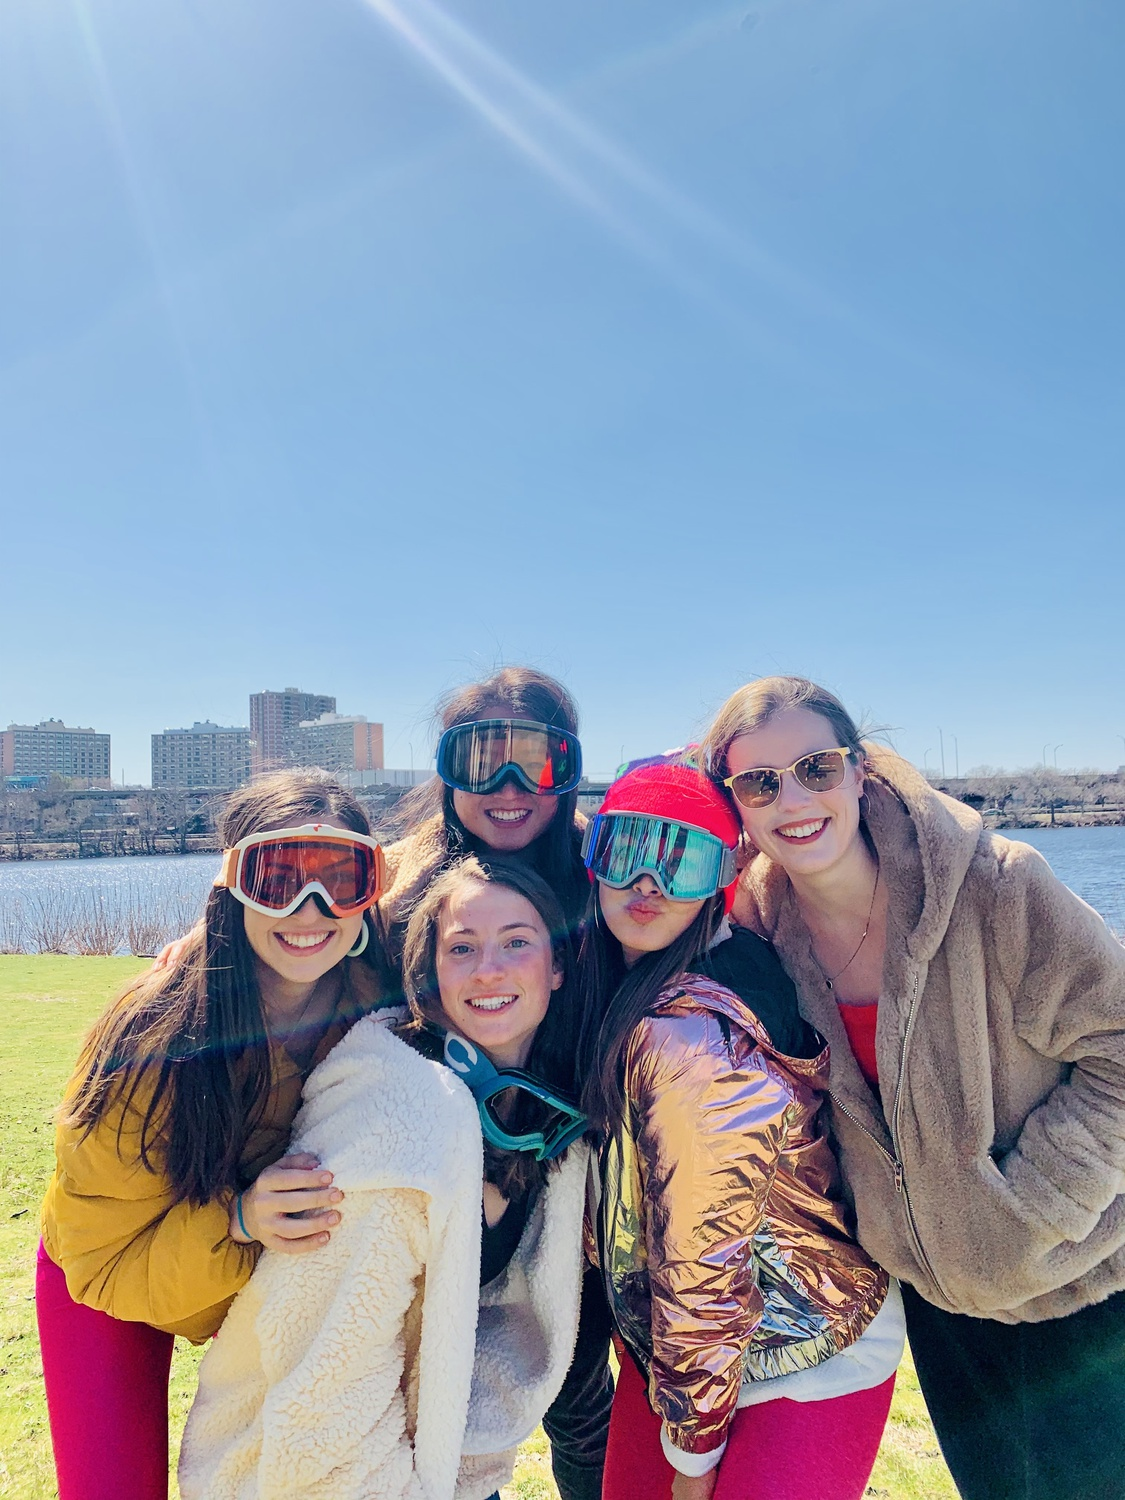 The blocking group at Magazine Beach in April. From left to right: Ciara E. Duggan '21, Olivia M. Price '21, Sophie M. Sun '21, Nellie F. Ide '21-22, Julia R. Friedman '21.